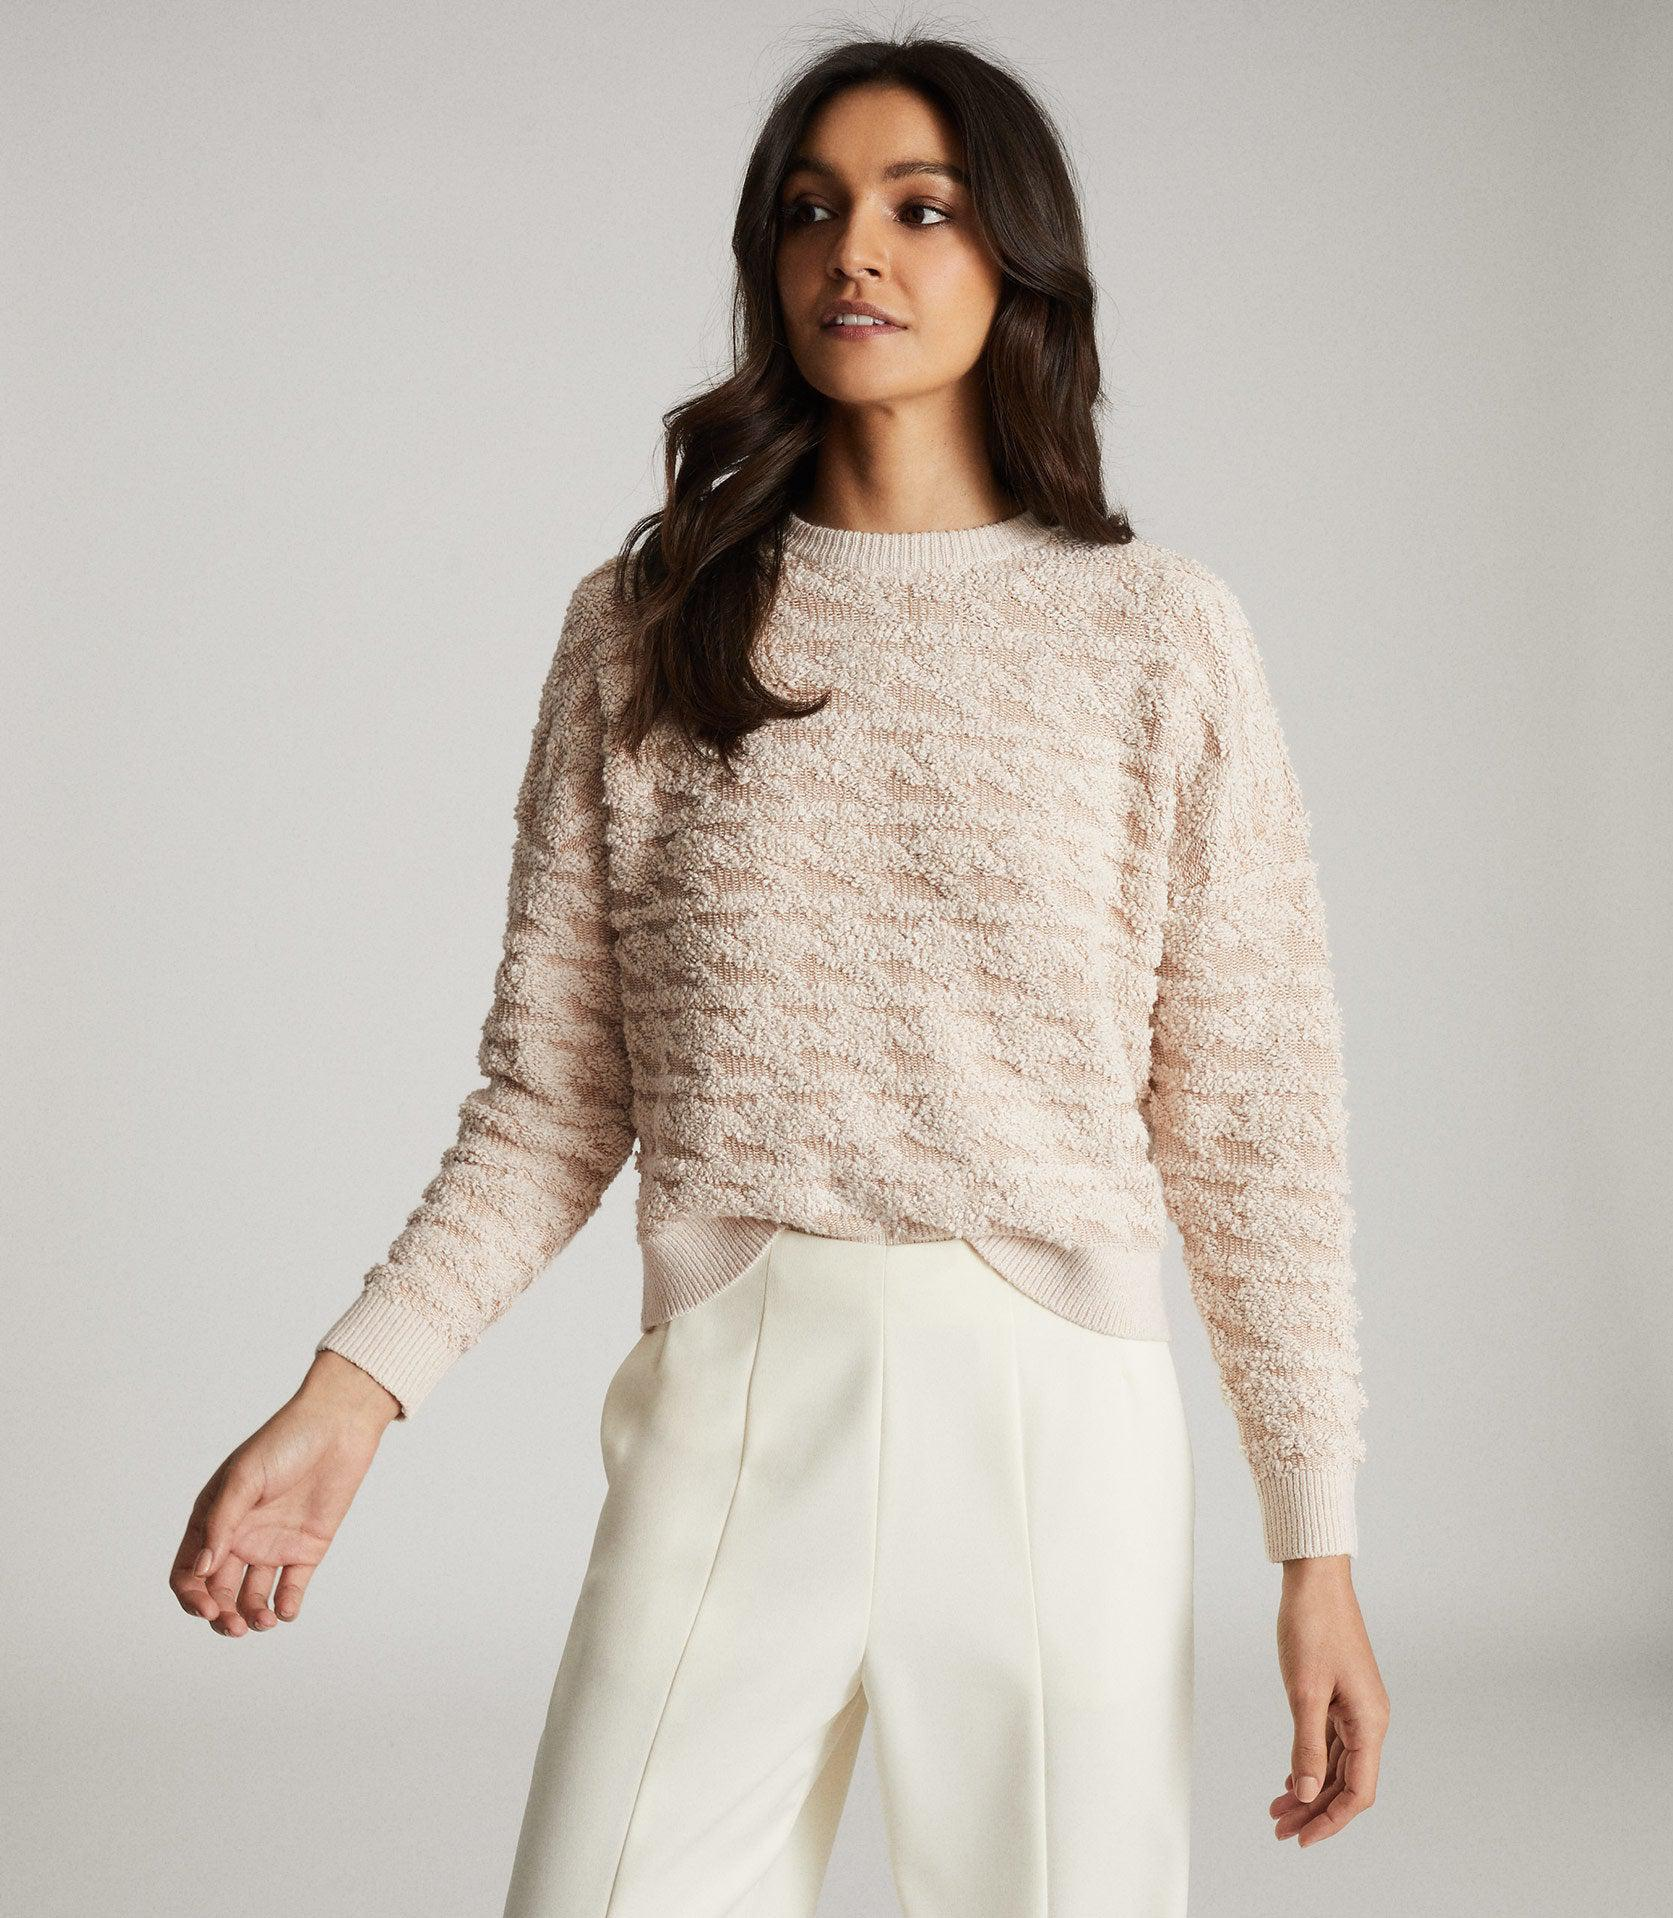 OTTO - TEXTURED PATTERNED JUMPER 1